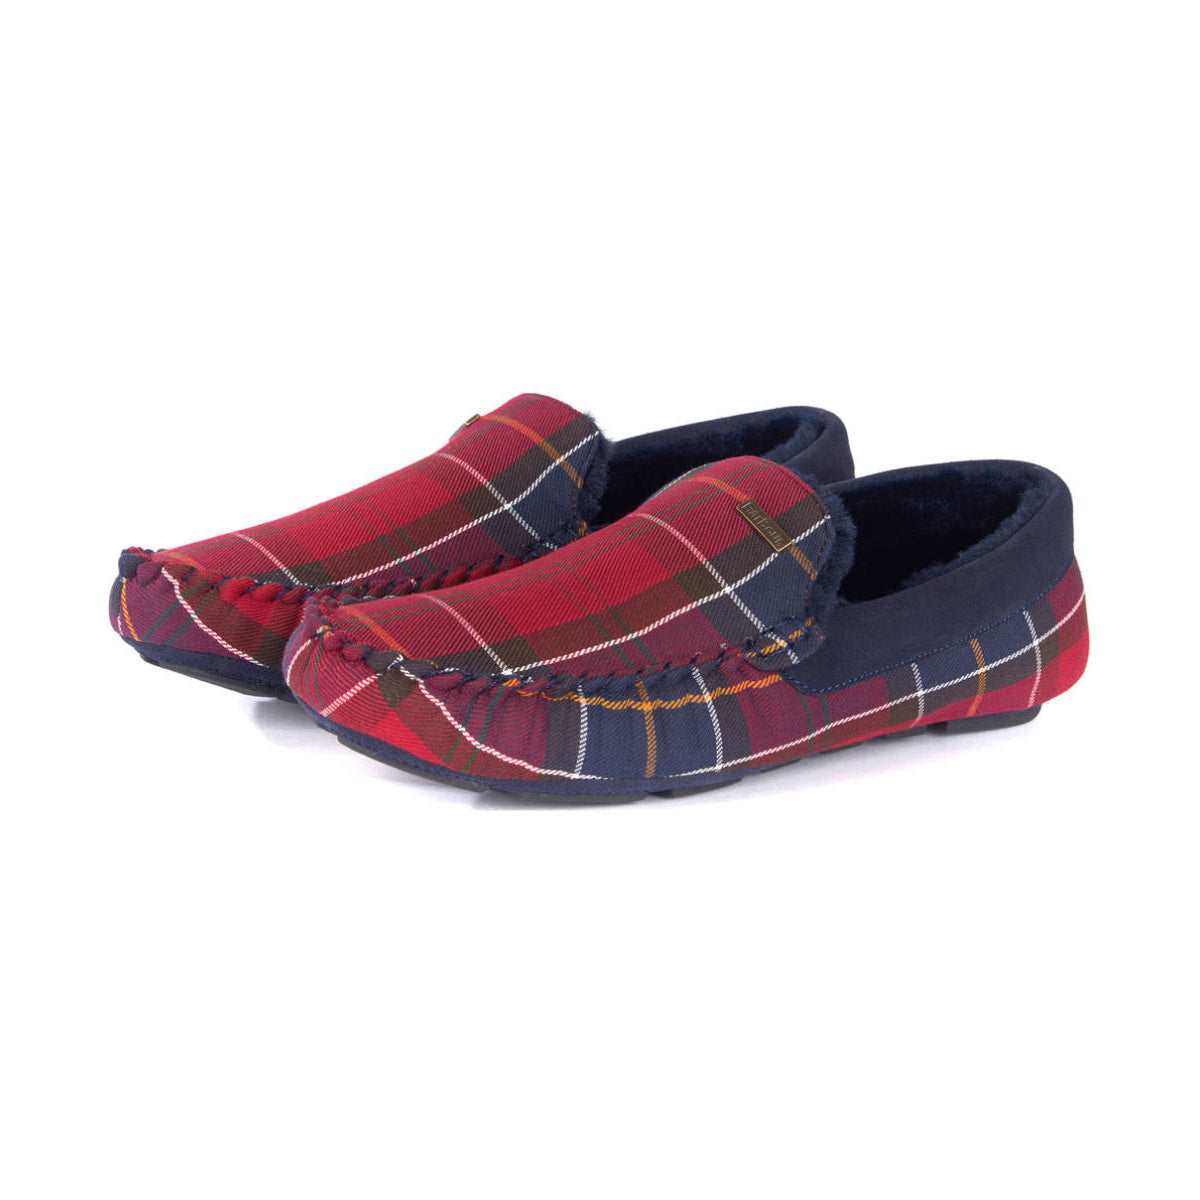 Barbour Monty Moccasin Slippers Merlot Tartan